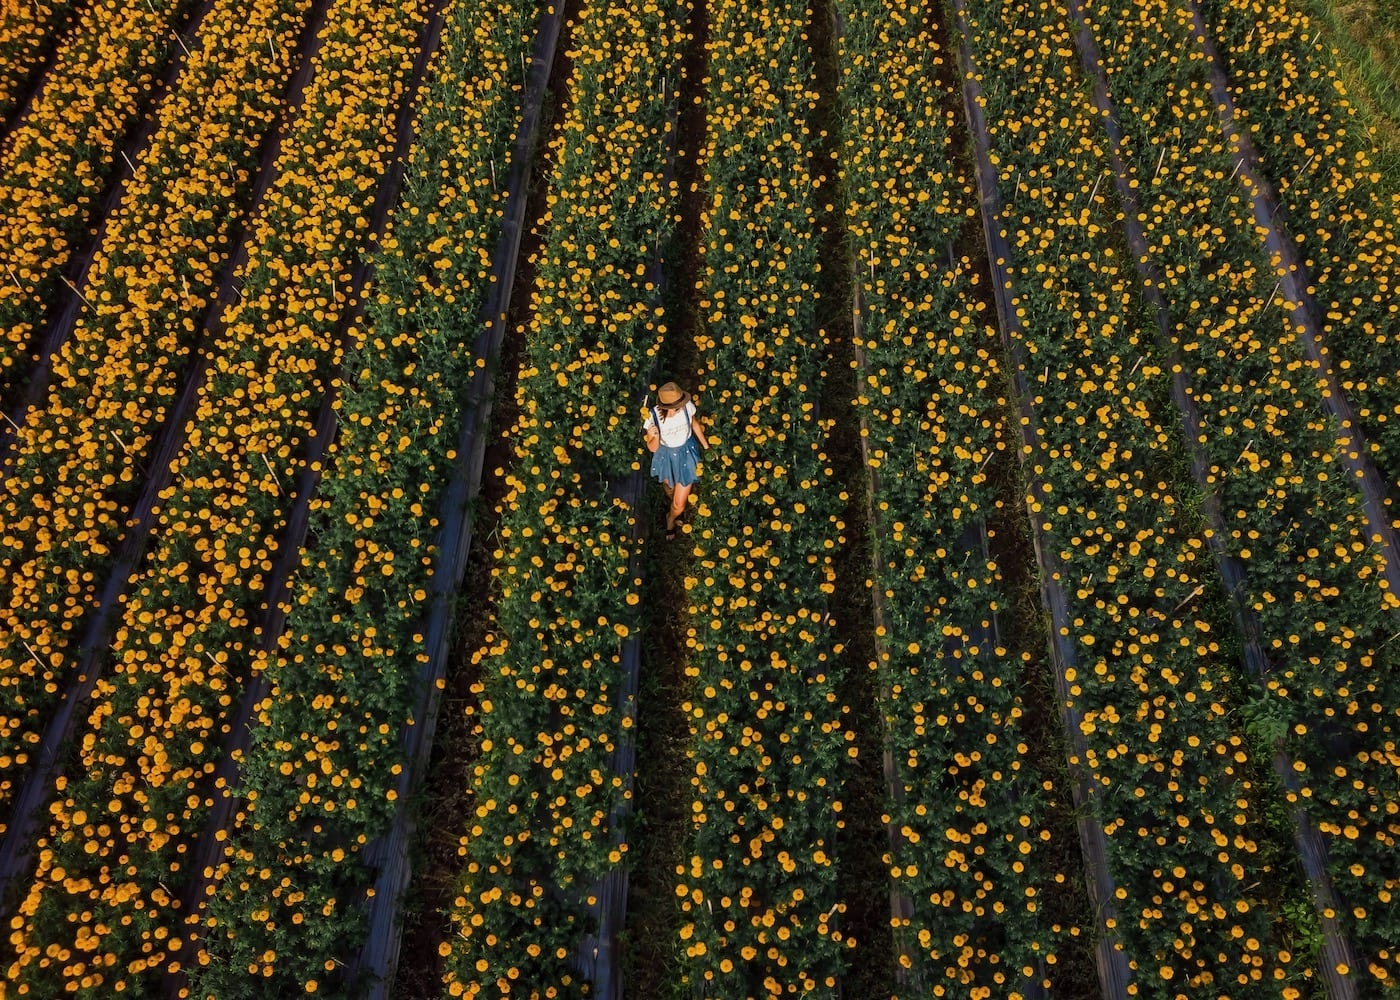 Most-beautiful-places-in-Bali-instagrammable-destinations-Marigold-Field